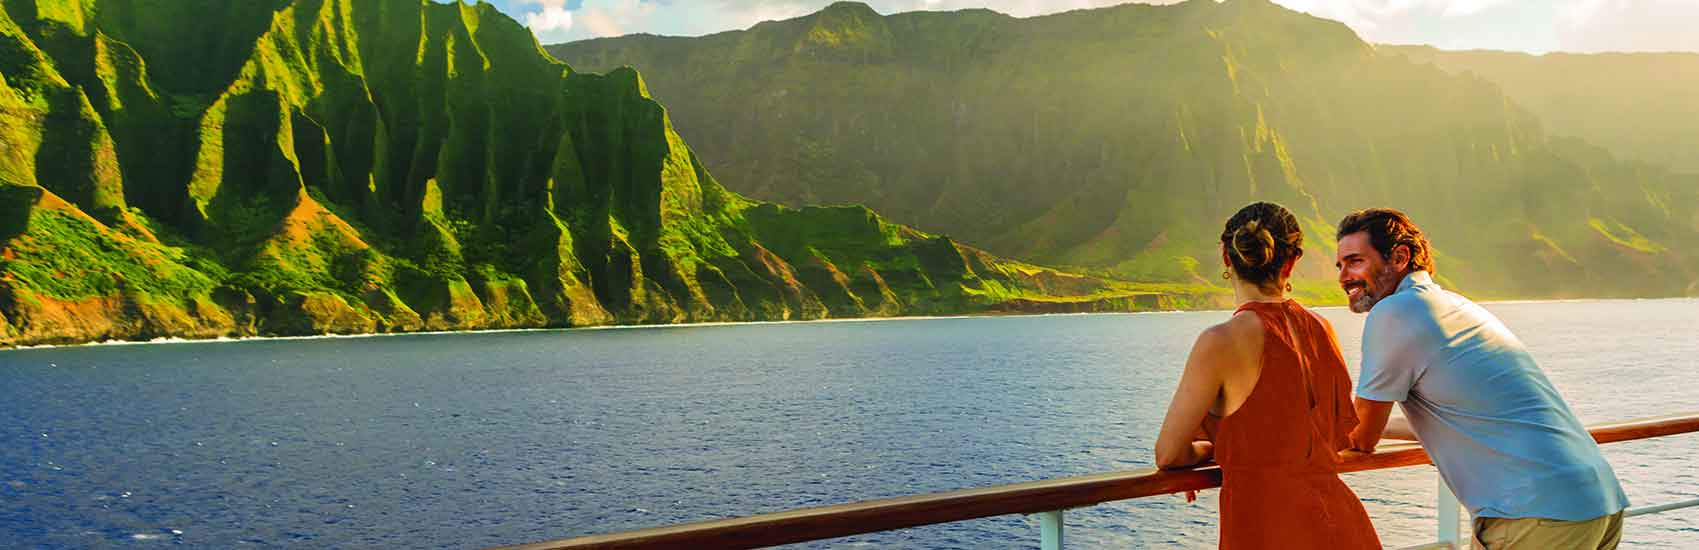 Feel Free with Norwegian Cruise Line 2